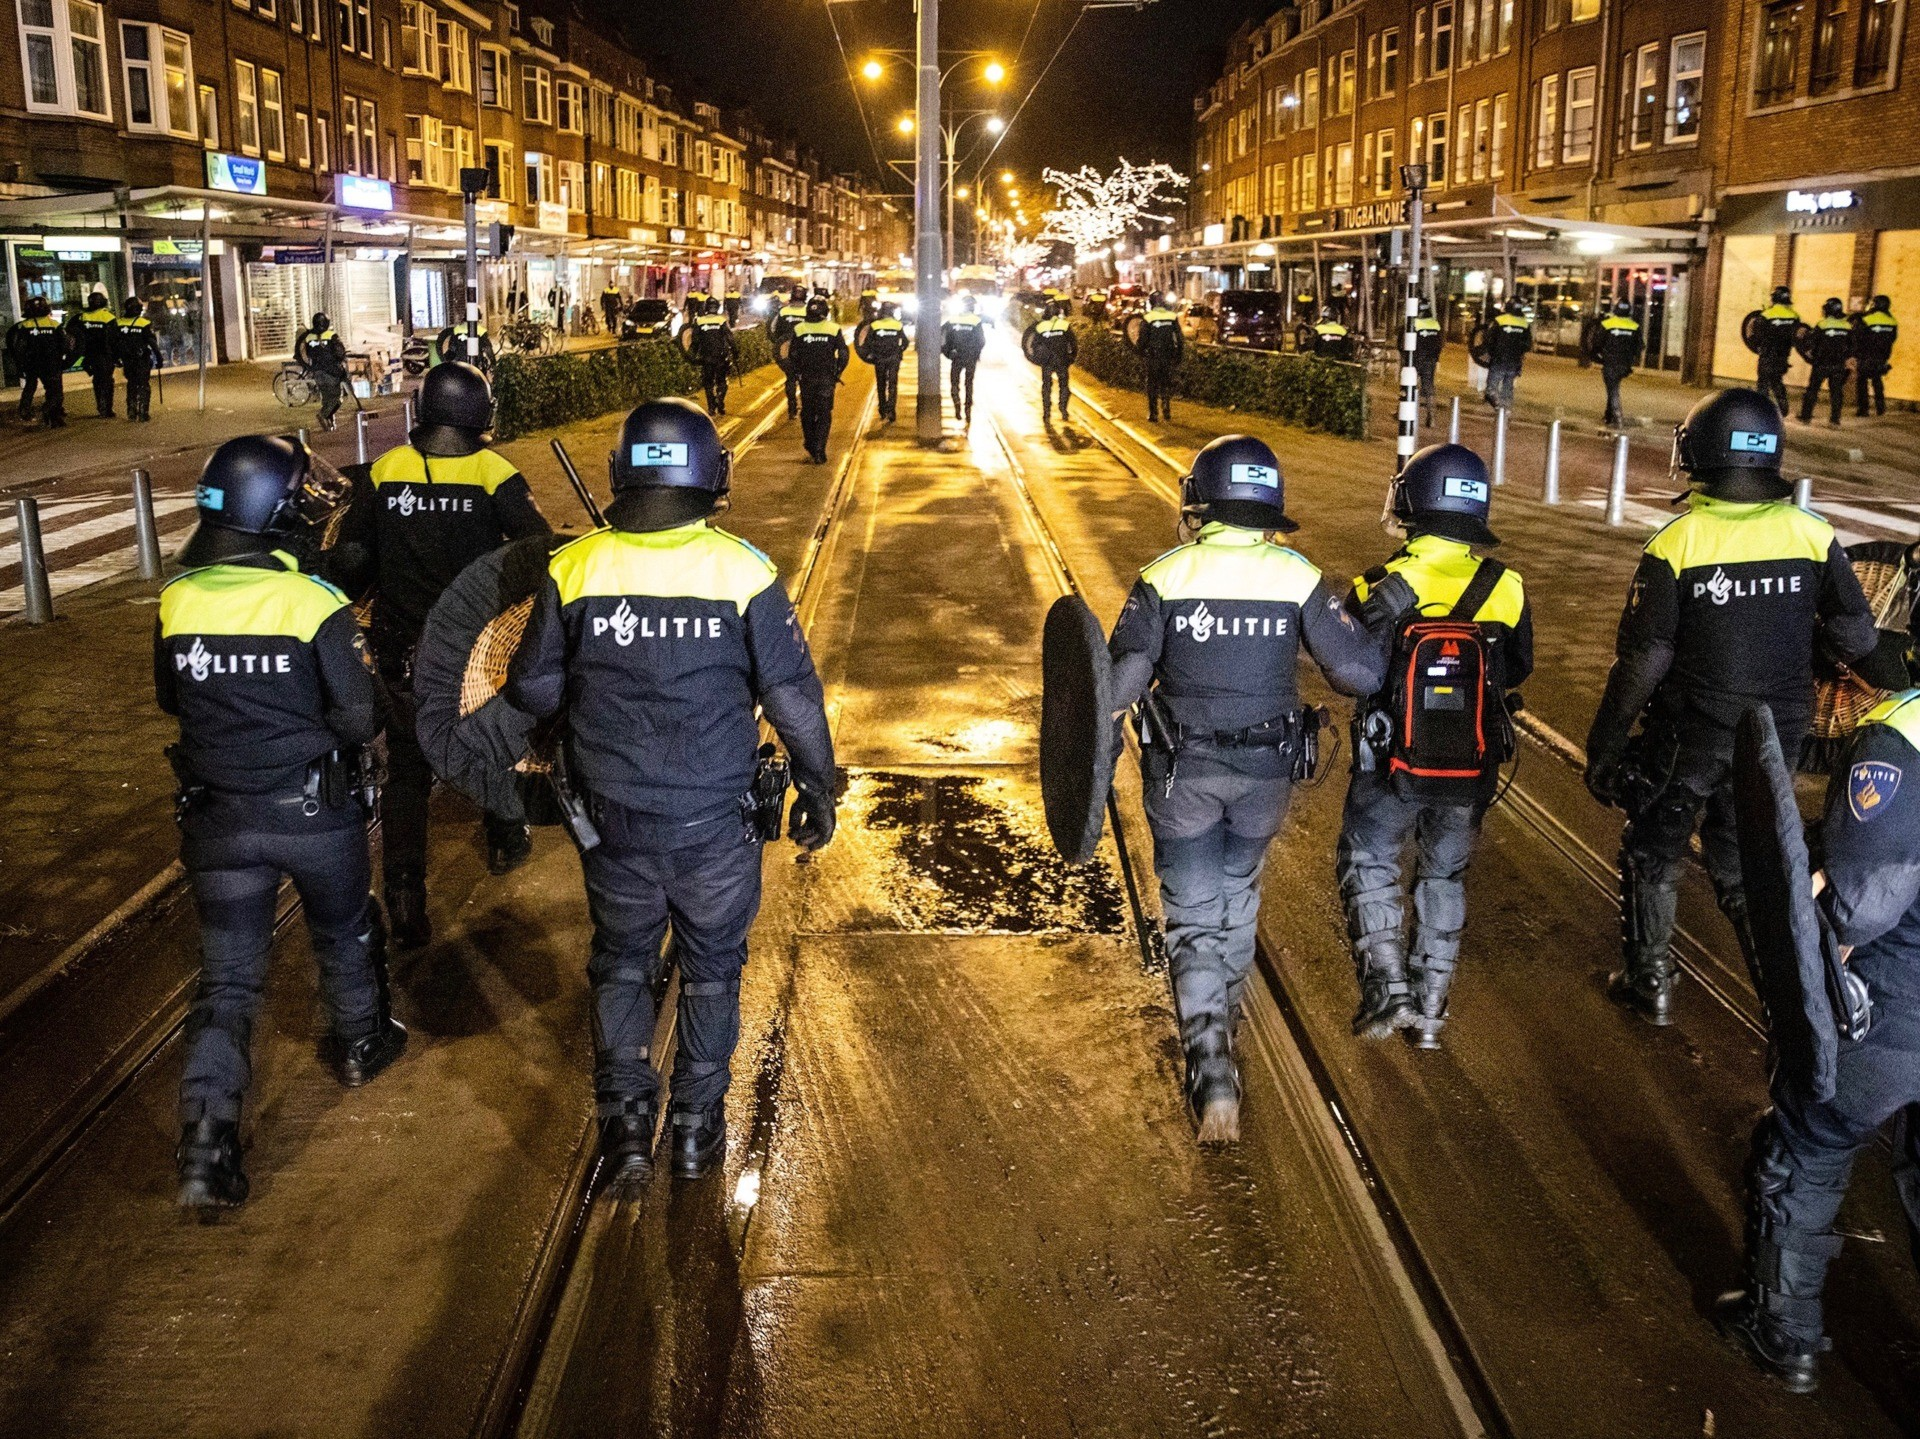 TOPSHOT - Dutch police officers patrol in the streets of Rotterdam, during the curfew time, on January 26, 2021, a day after police clashed with groups of demonstrators protesting against the introduction of new measures, including the curfew, to fight against the spread of the Covid-19. - In South Rotterdam and in the city center, several people were arrested for, among other things, gathering and not being able to show proof of identity. The police are massively present in the city after the riots of the day before and check people walking in groups on the street. (Photo by STR / ANP / AFP) / Netherlands OUT (Photo by STR/ANP/AFP via Getty Images)